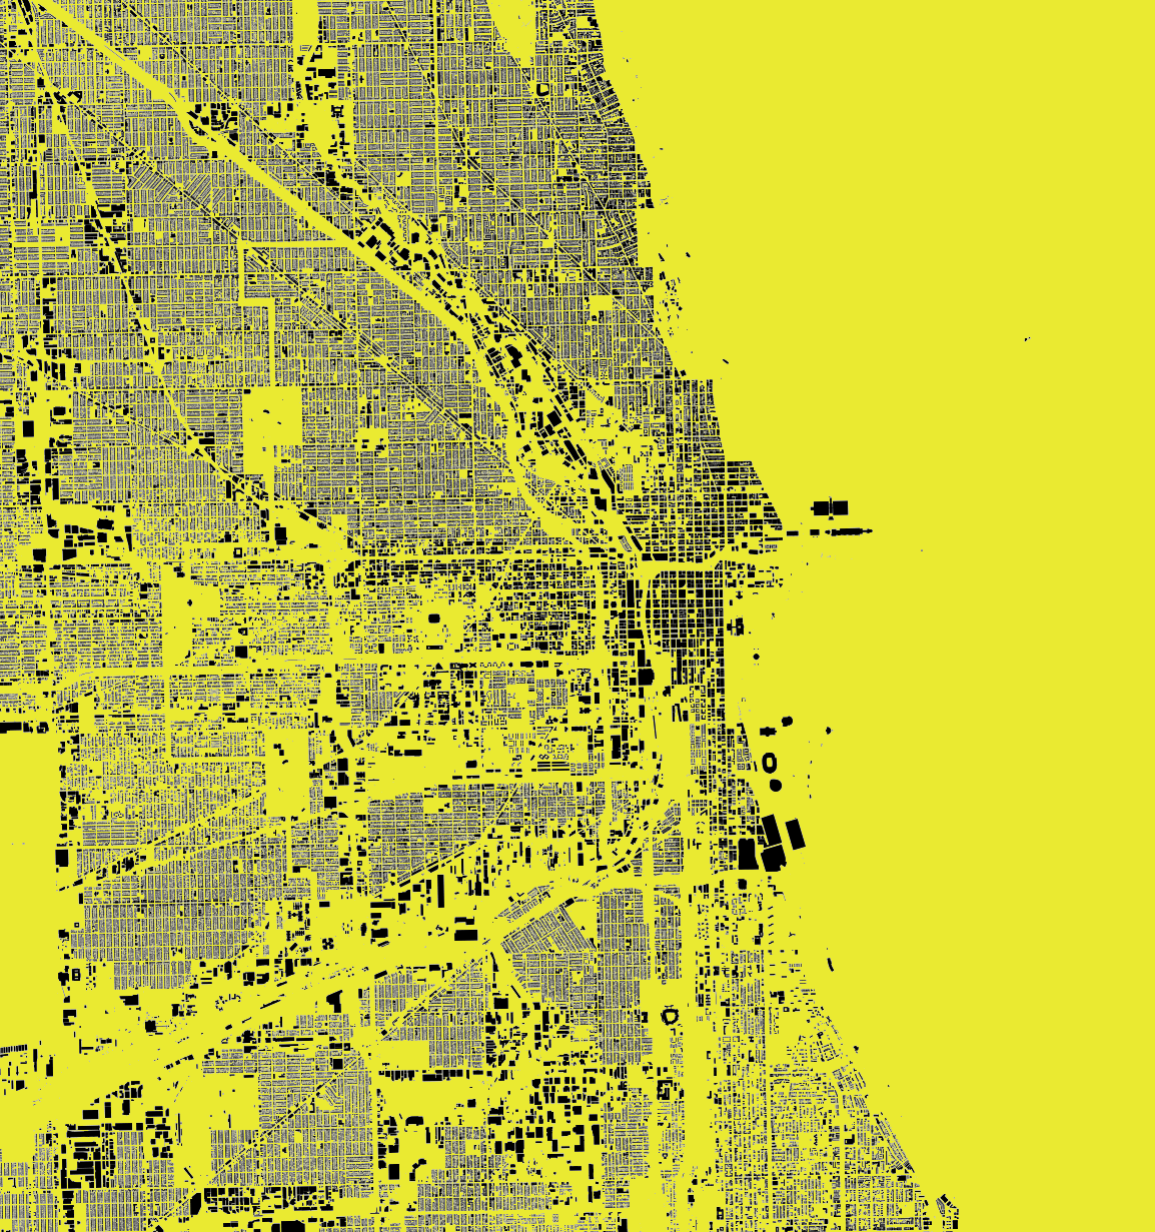 Graphic Site Map: Chicago Is One Of The Most Edited Cities In OSM. Made With Stamen Map Stack.